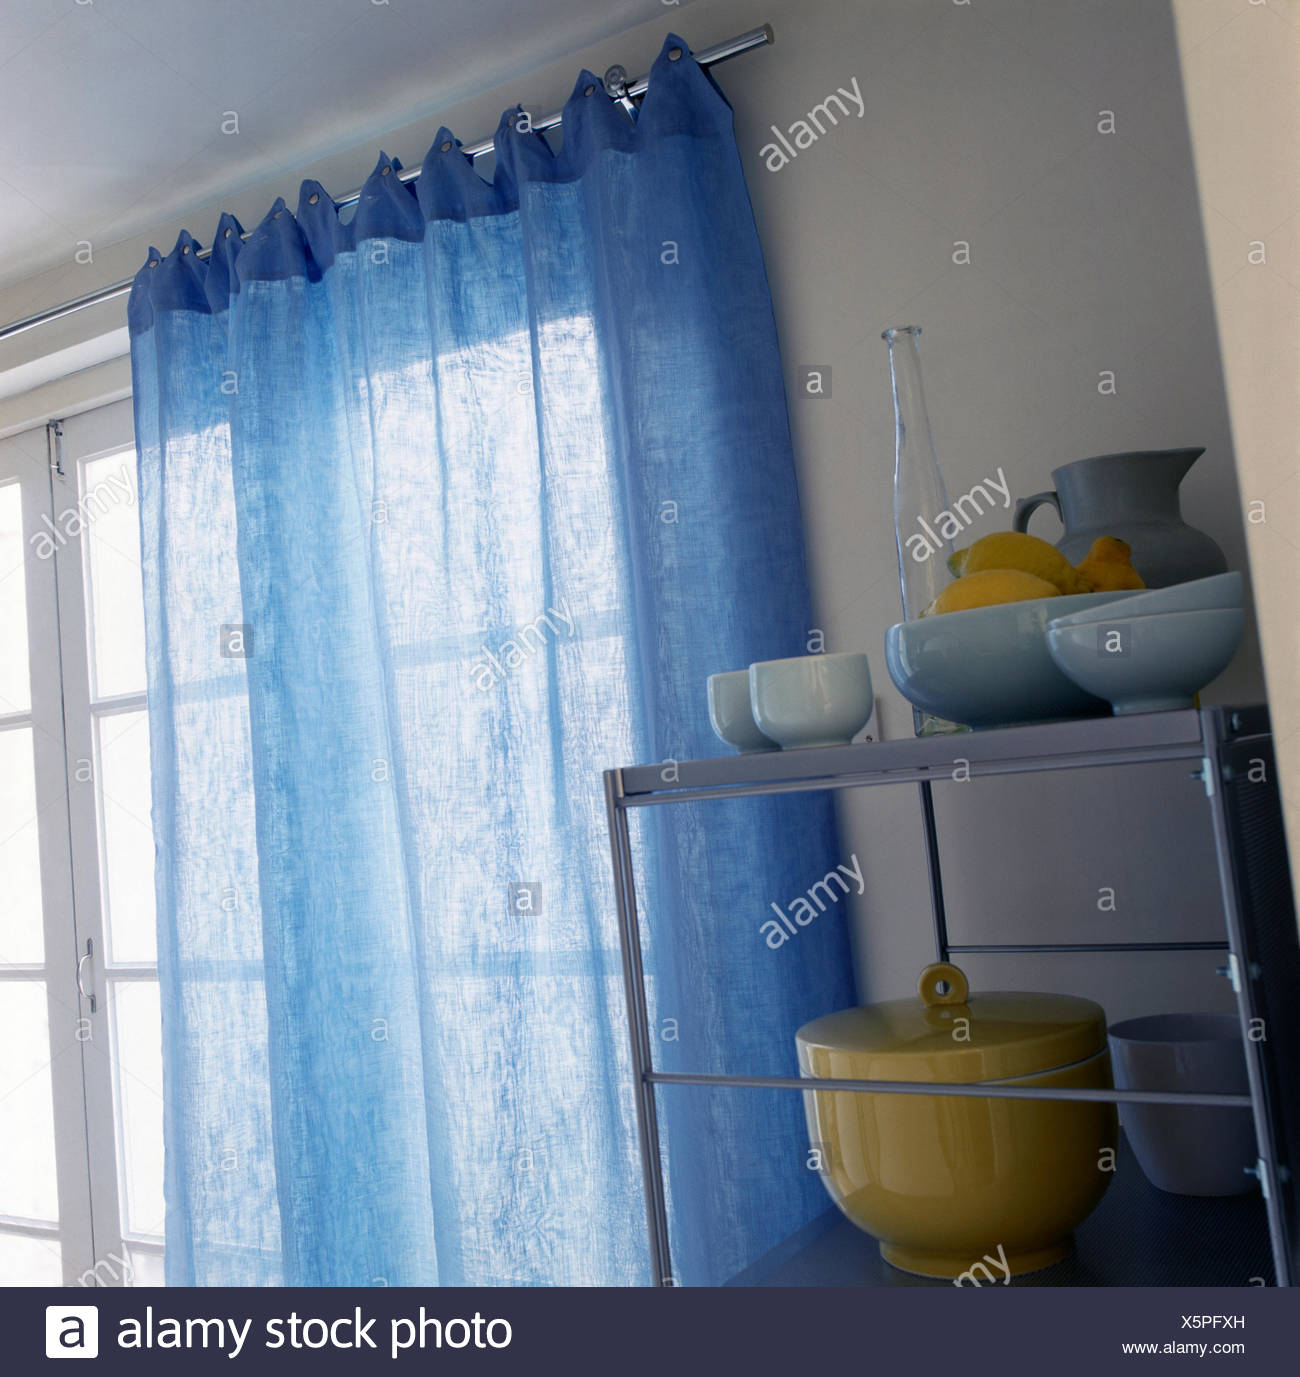 Blue voile curtain on a metal pole above window beside metal ...